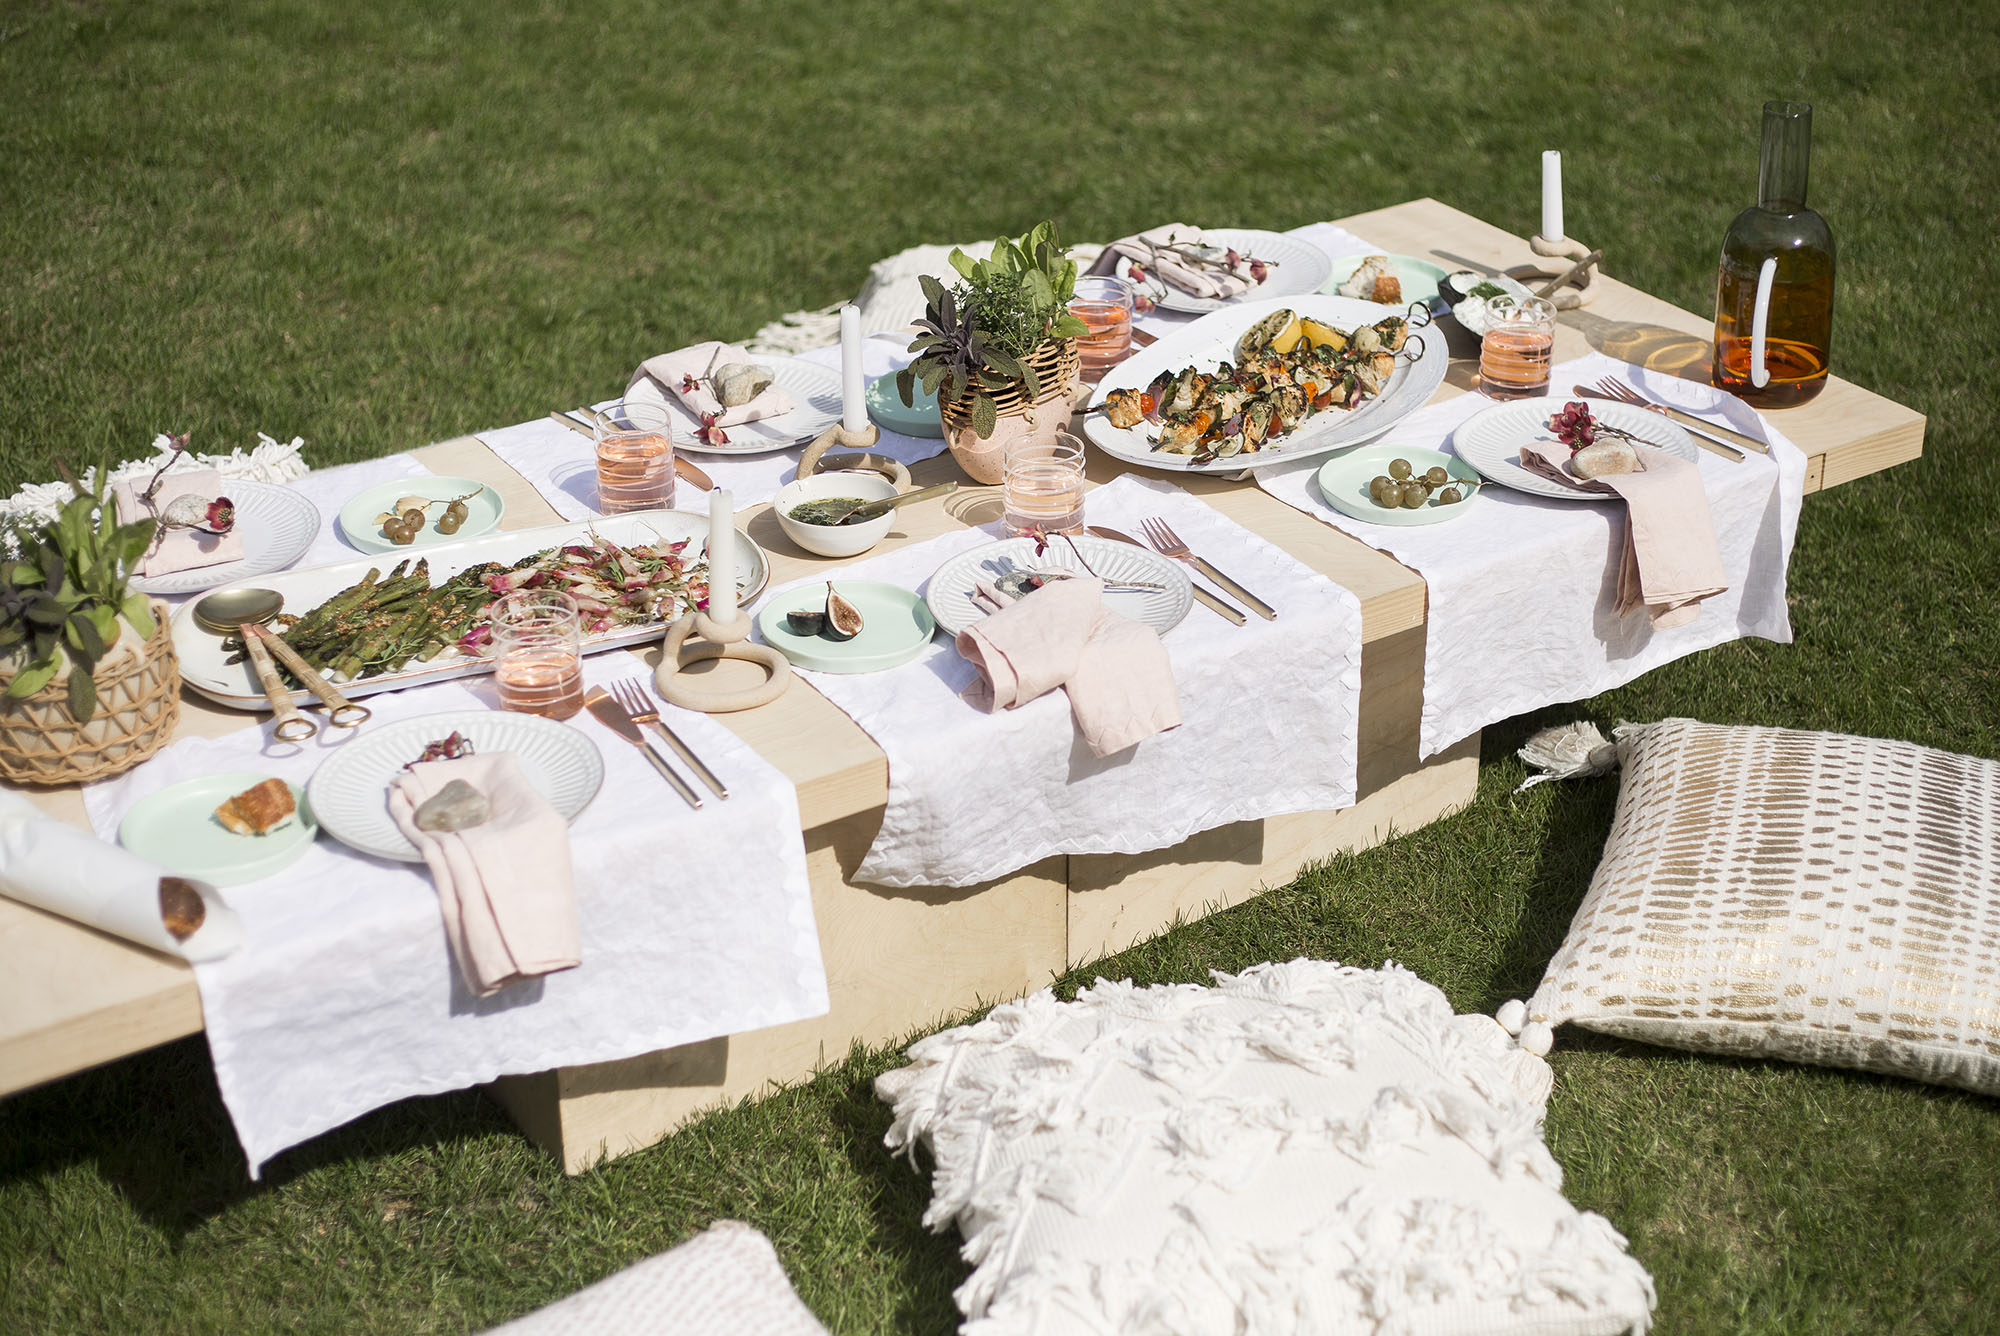 A bountiful outdoor table for a summer kickoff